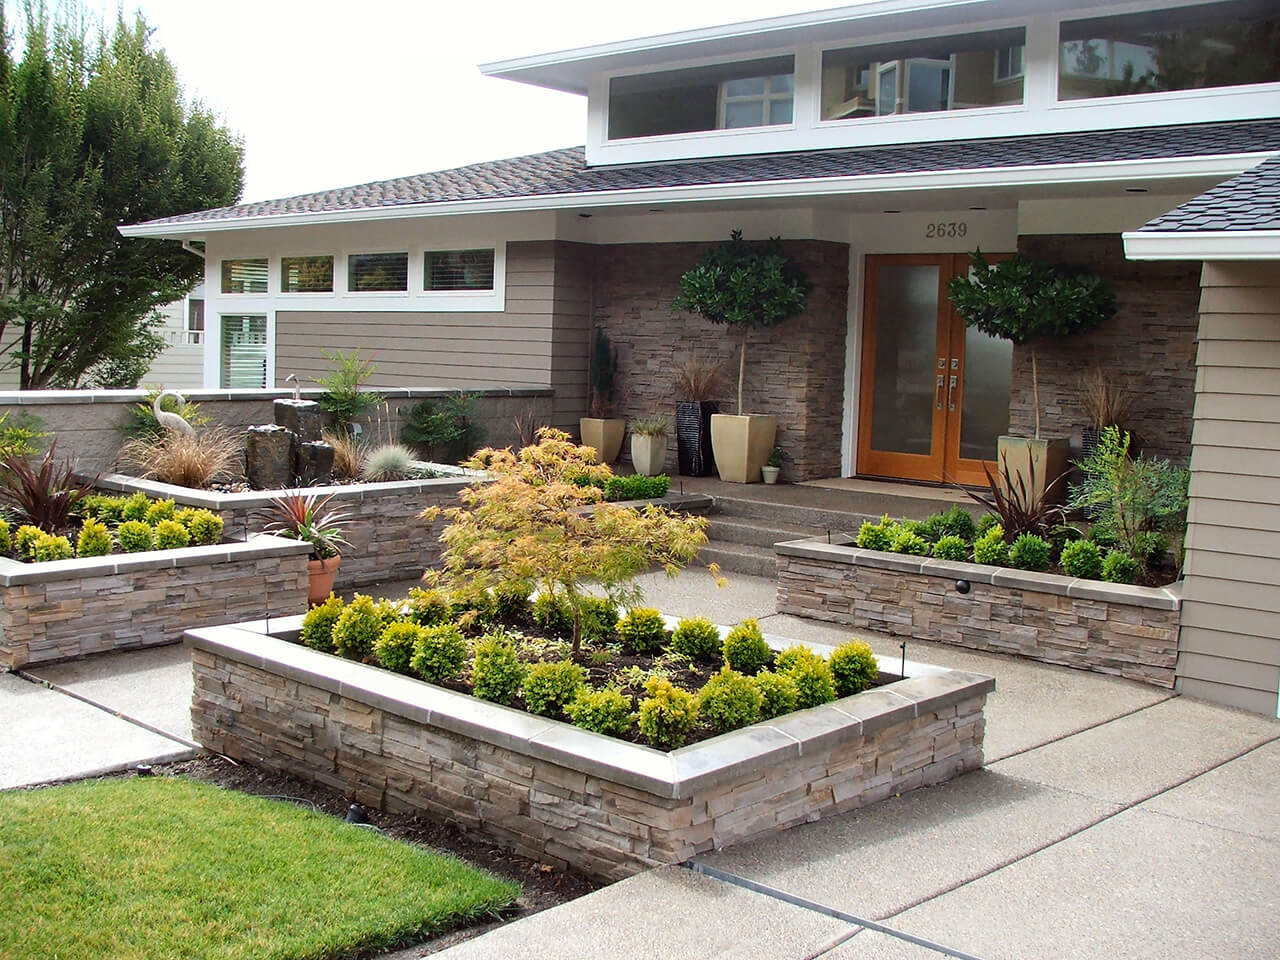 50 best front yard landscaping ideas and garden designs for Front yard garden design plans